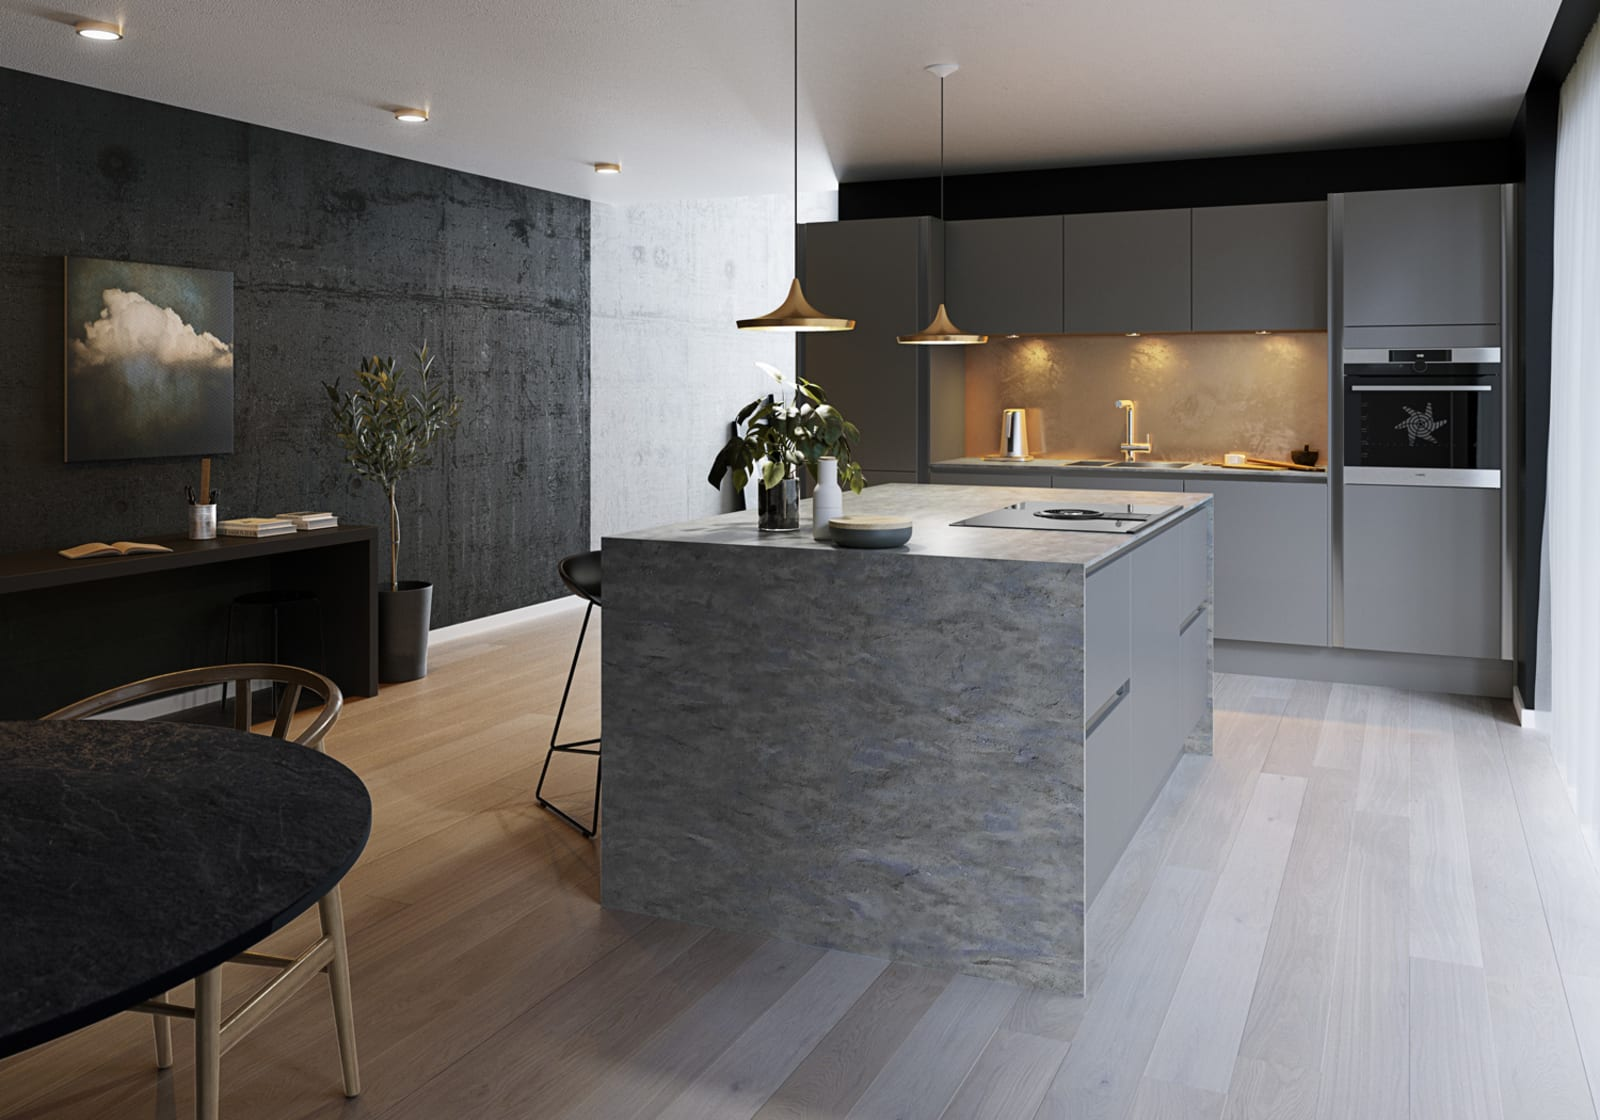 Integra Ascoli kitchen by Magnet. Matt finish handless door with trim brushed in aluminum for a high end finish.